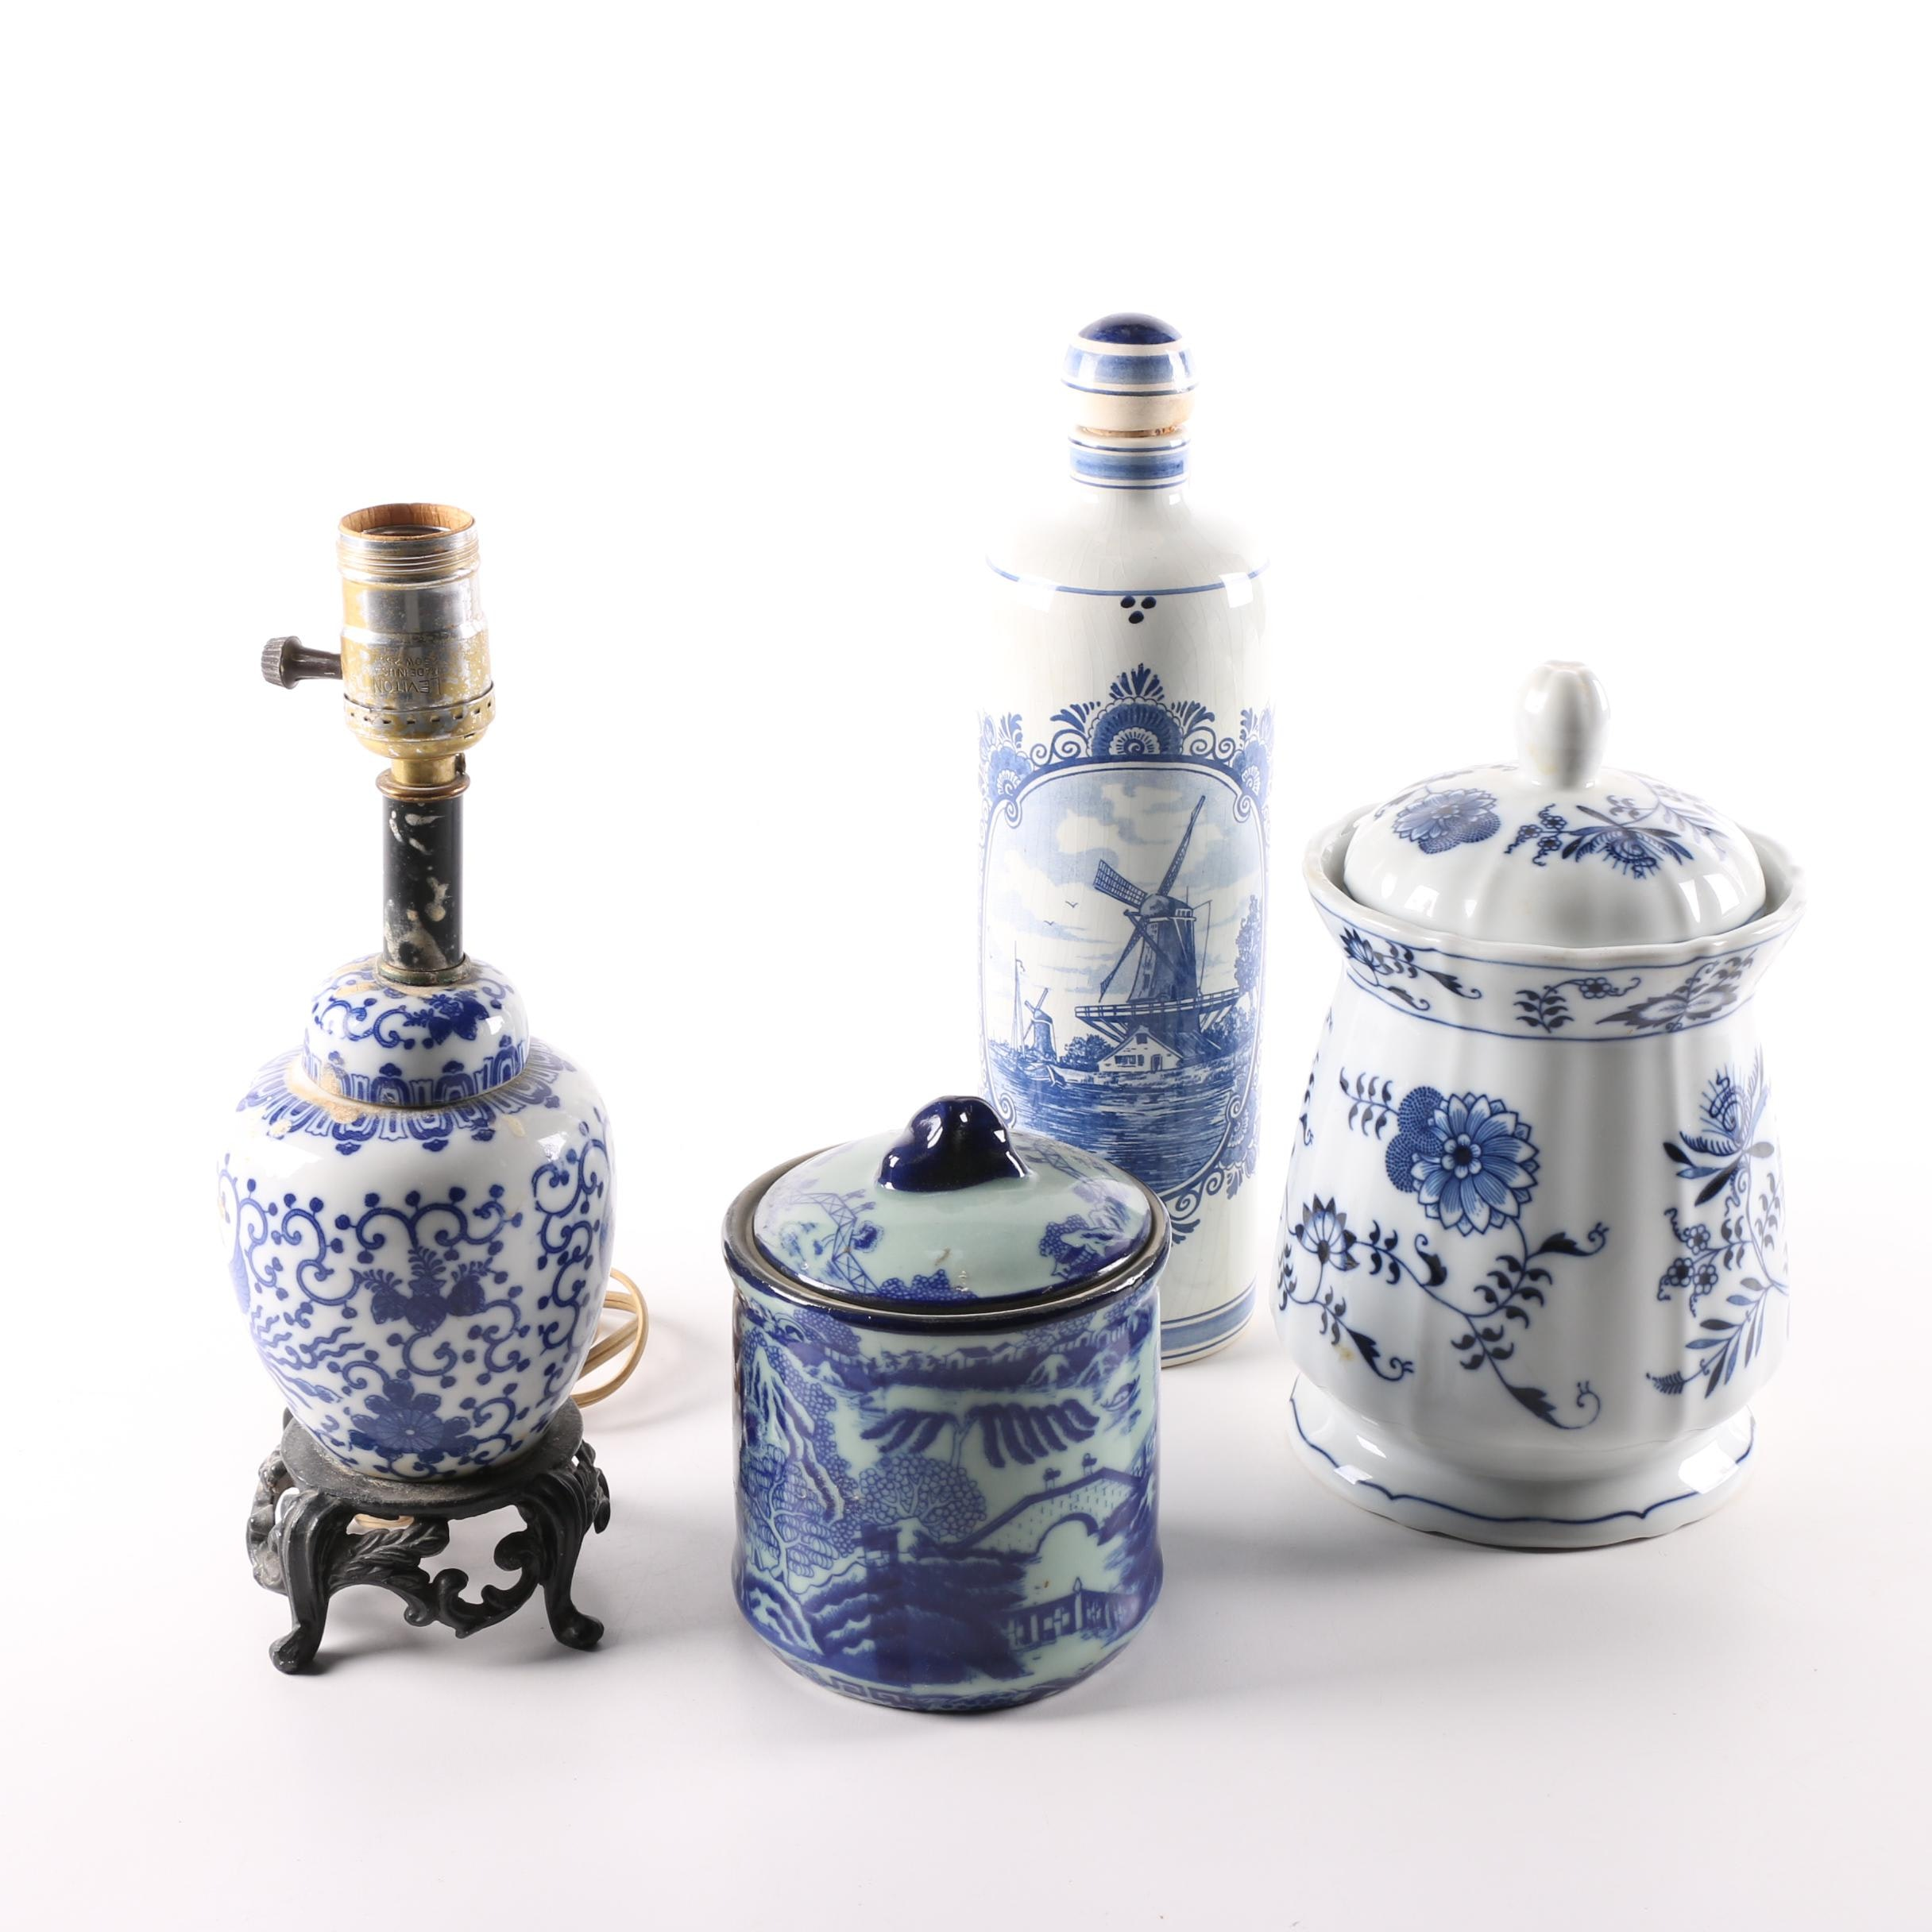 Ginger Jar Lamp and Other Blue and White Ceramic Vessels